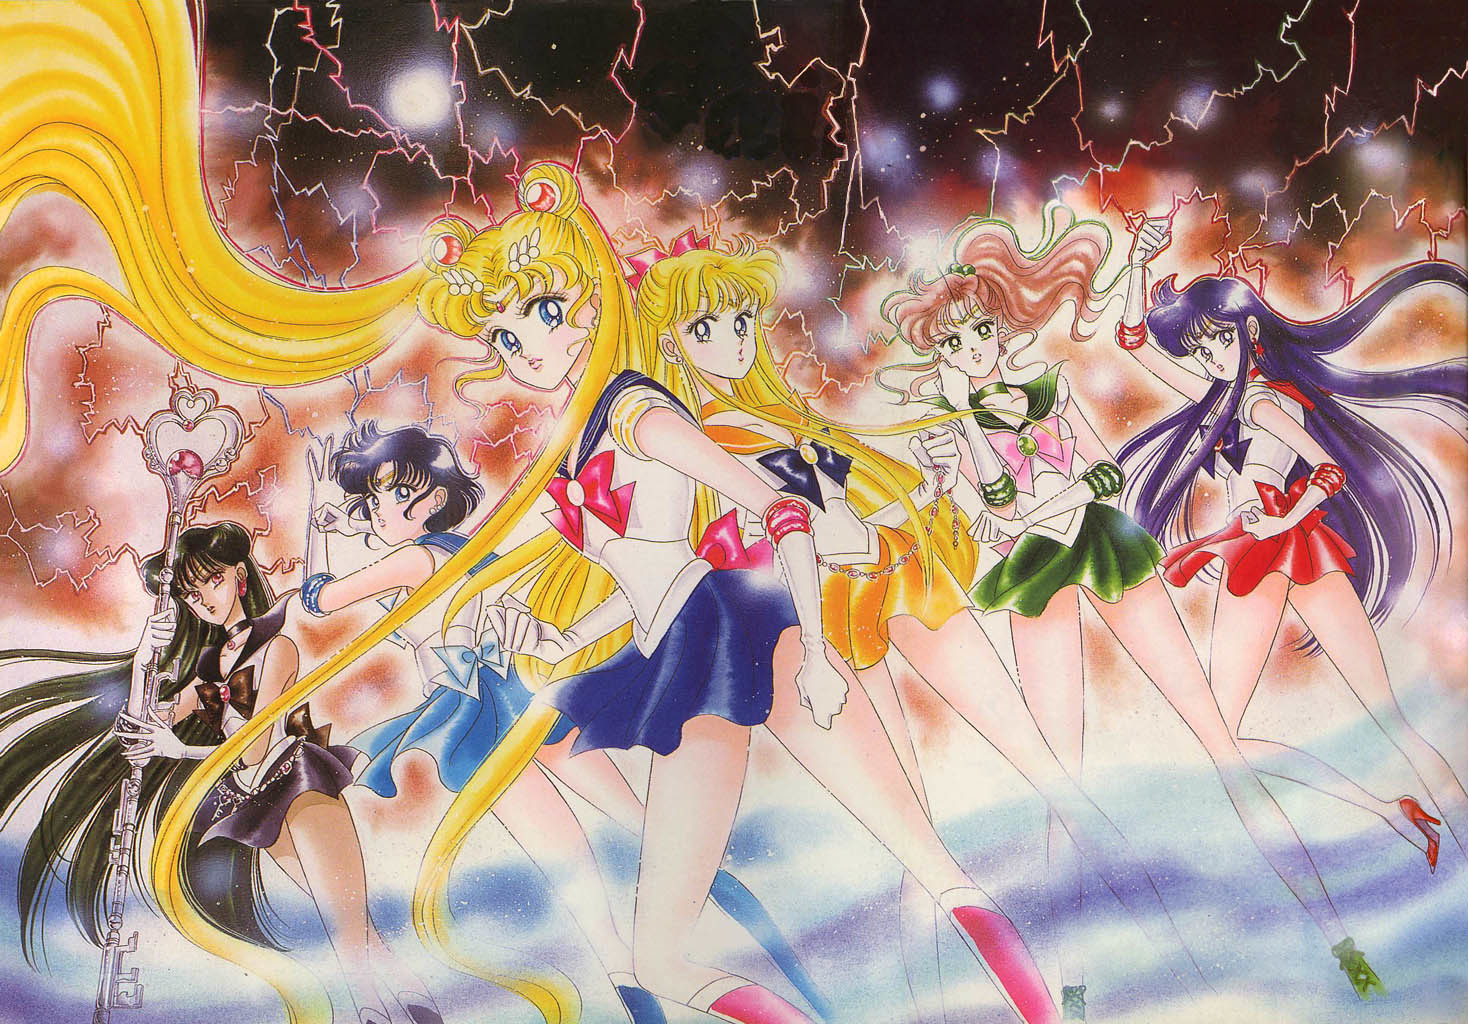 sailor moon Anime HD Wallpaper